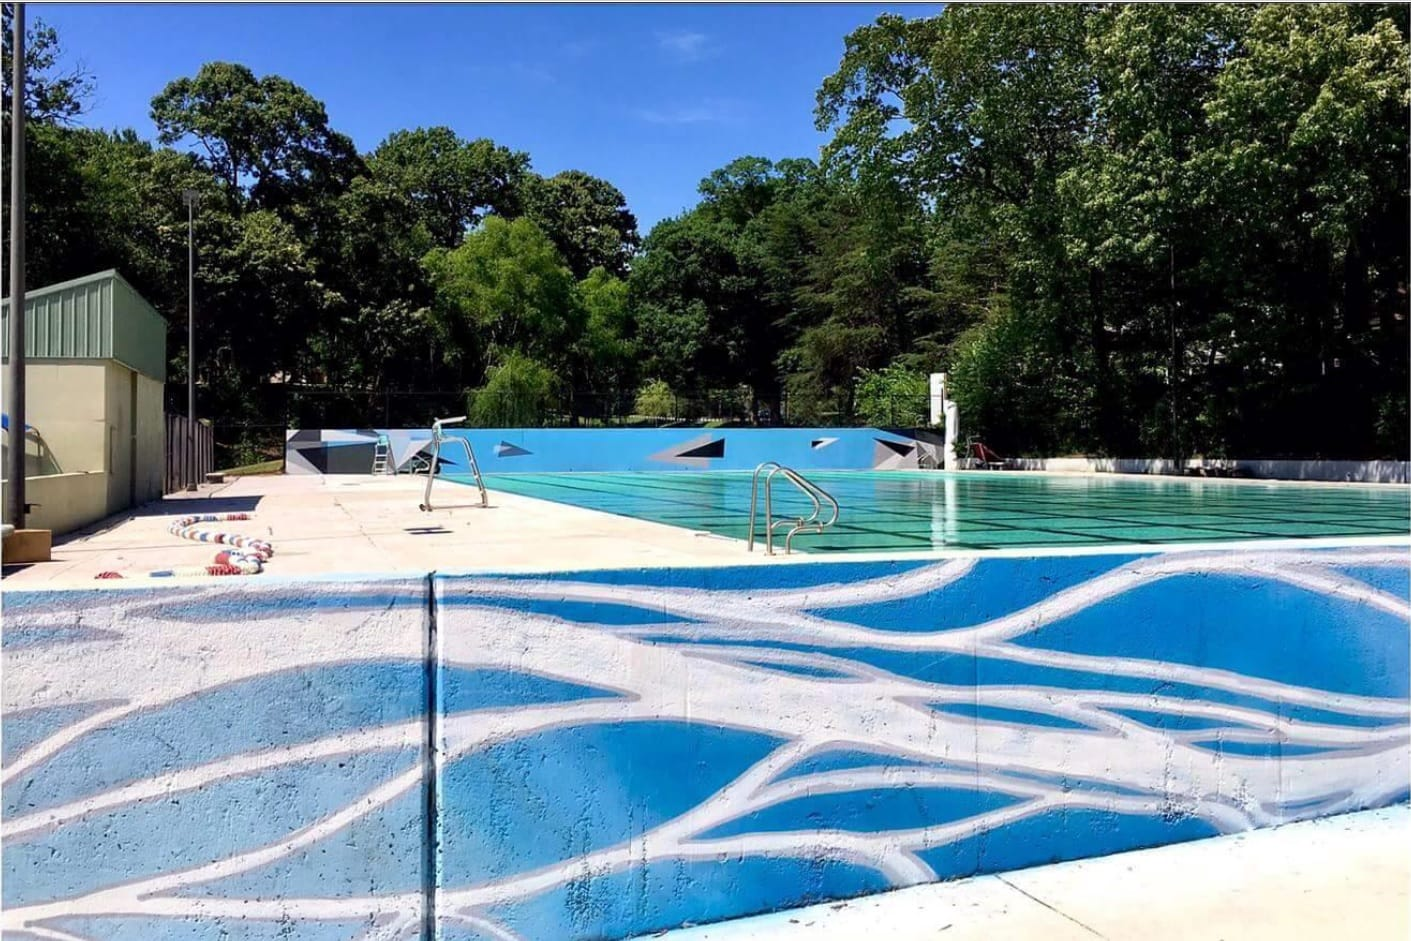 Public art at grant park pool gets a refresh the porch press for Community swimming pool grants